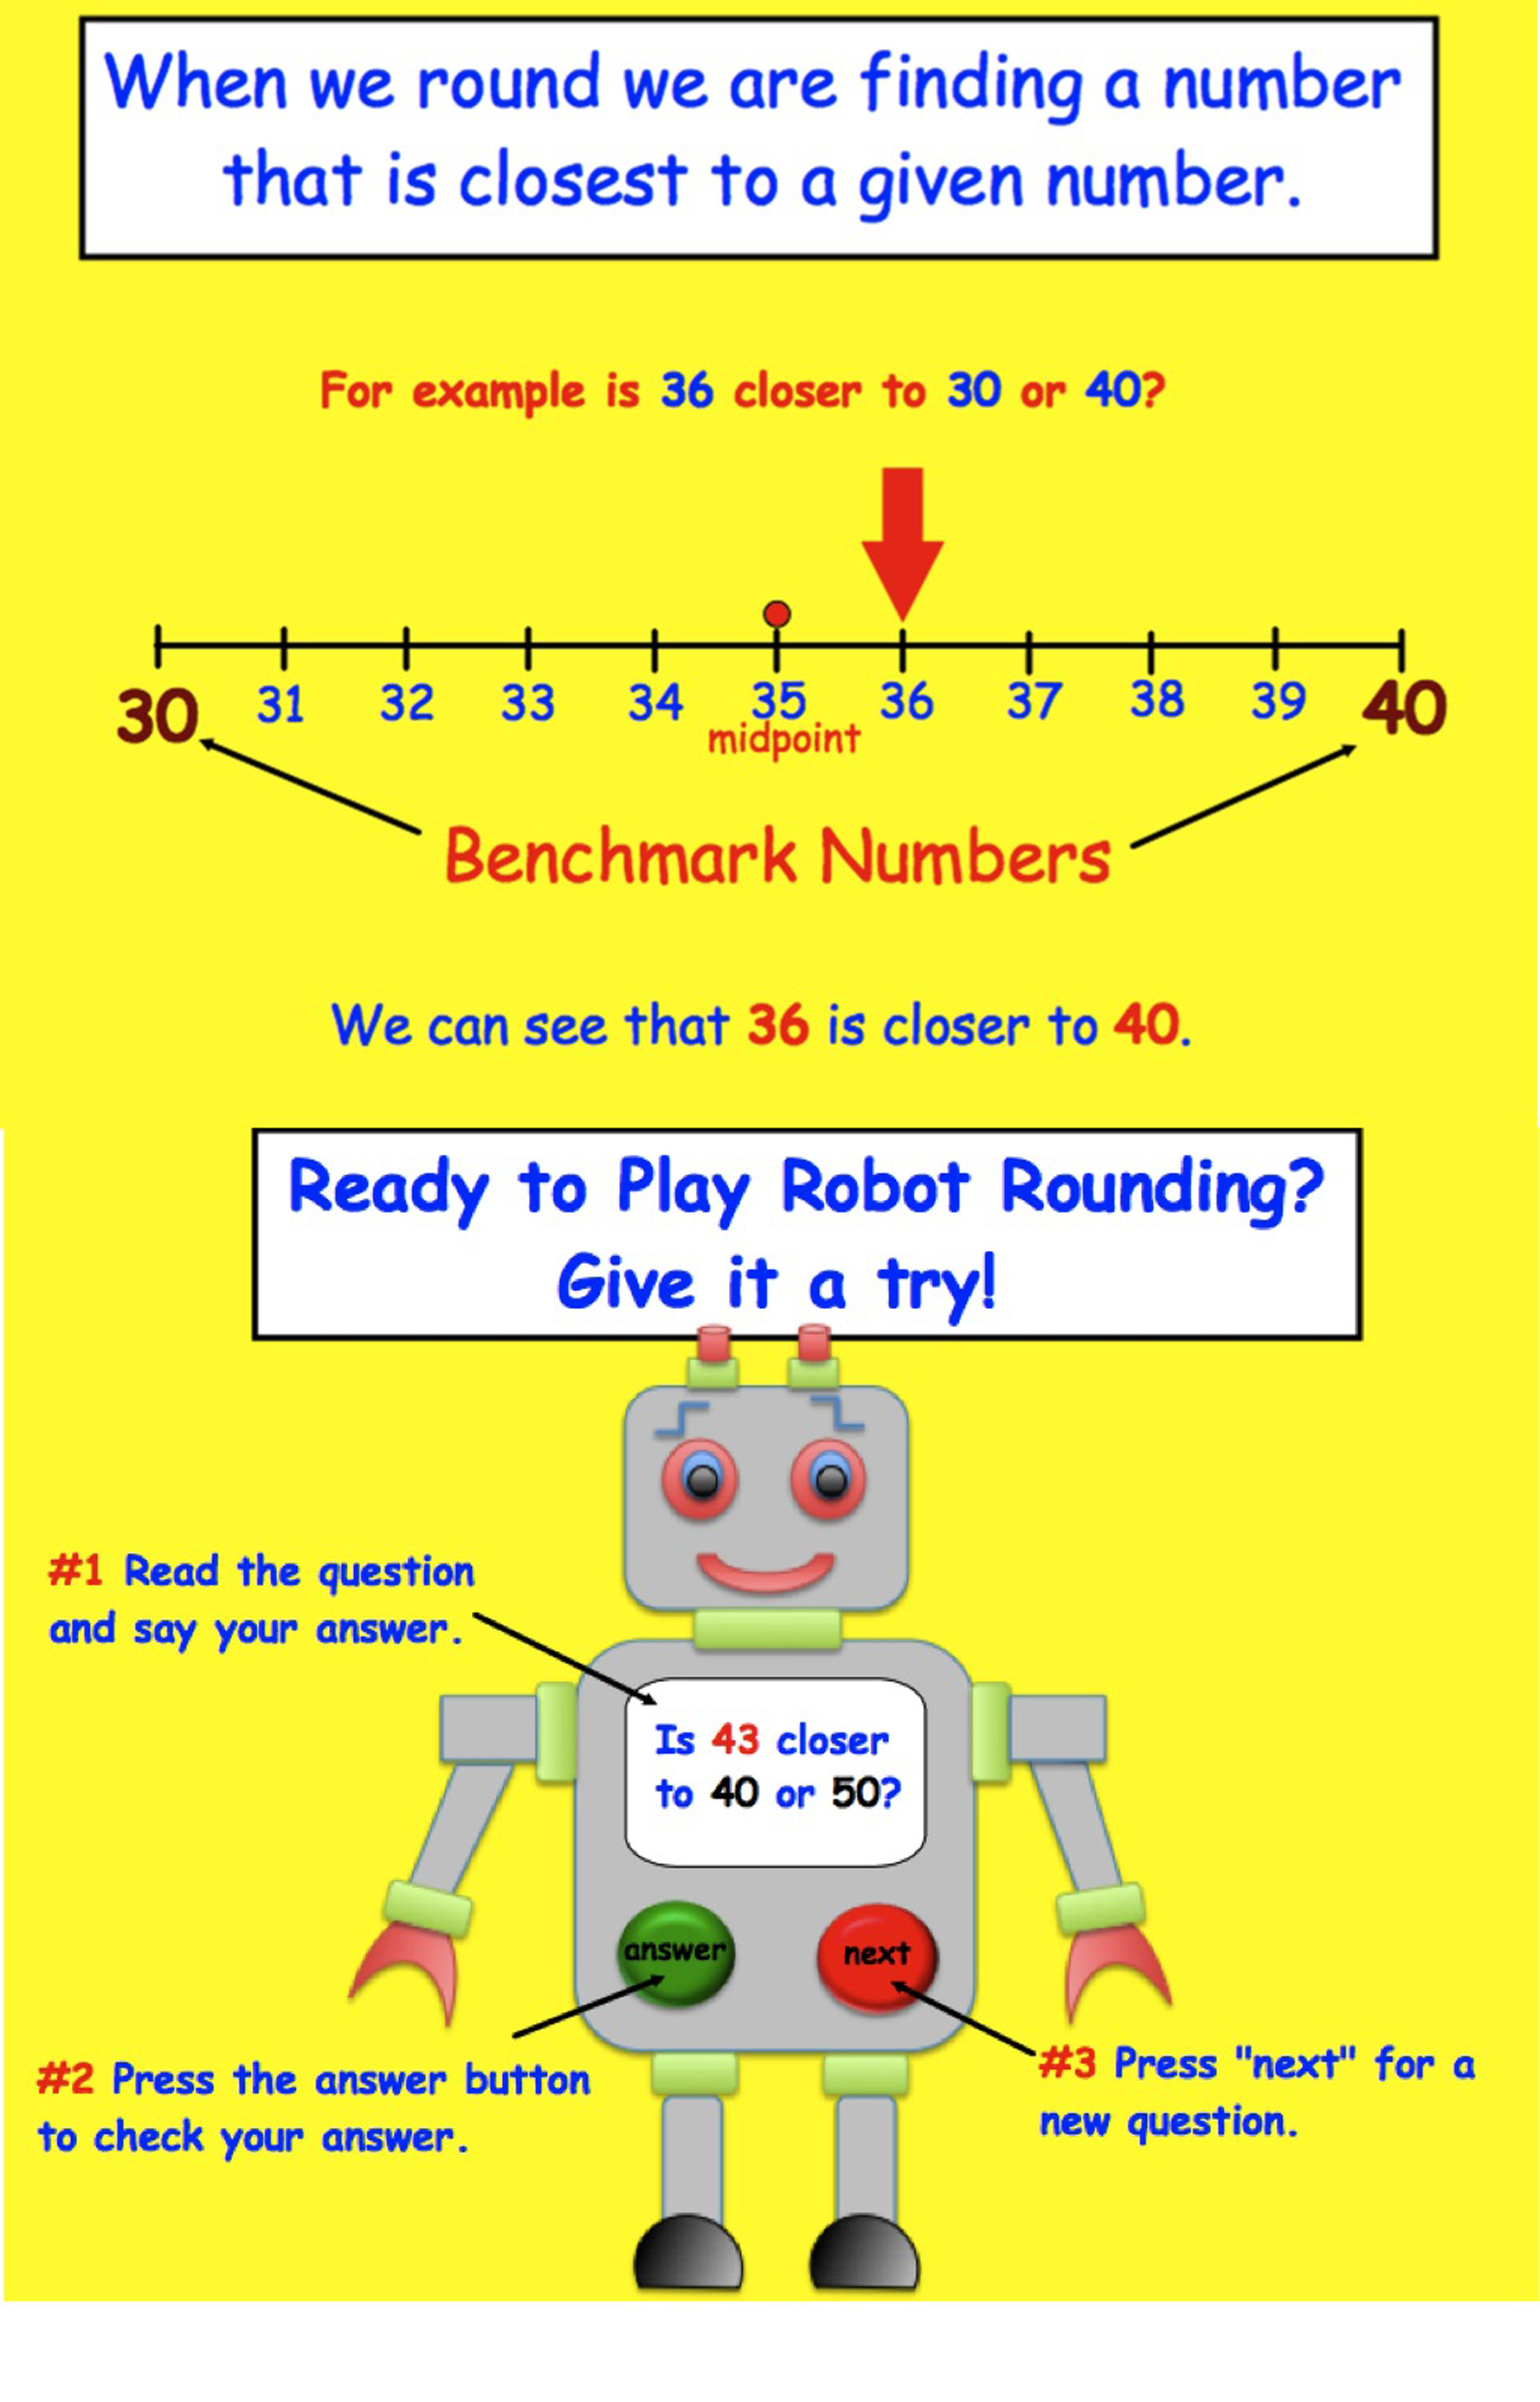 Robot Rounding Game Interactive Smartboard Lesson Gr 3